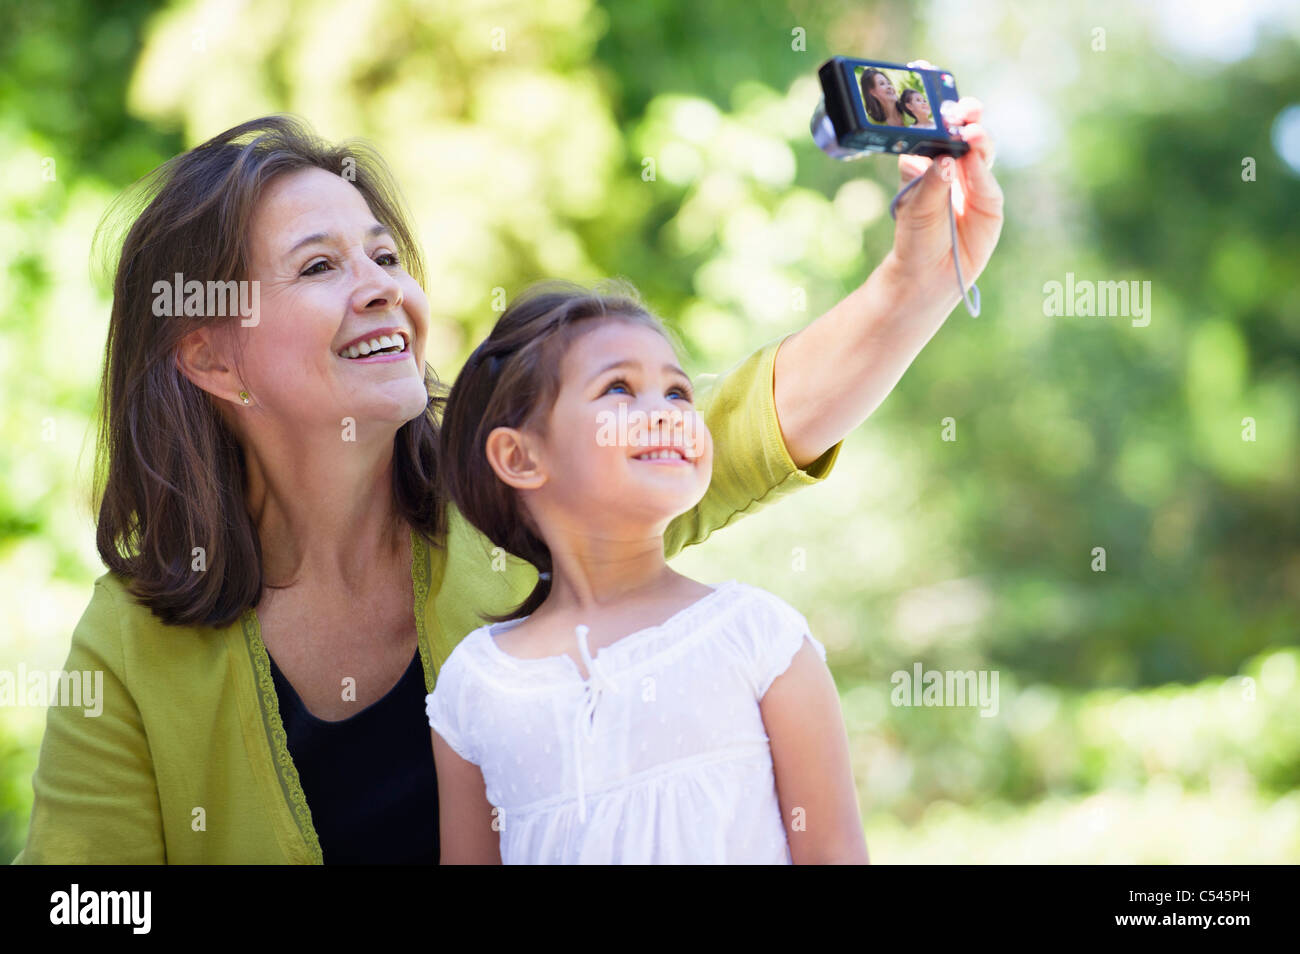 Woman and her granddaughter taking photos of themselves - Stock Image